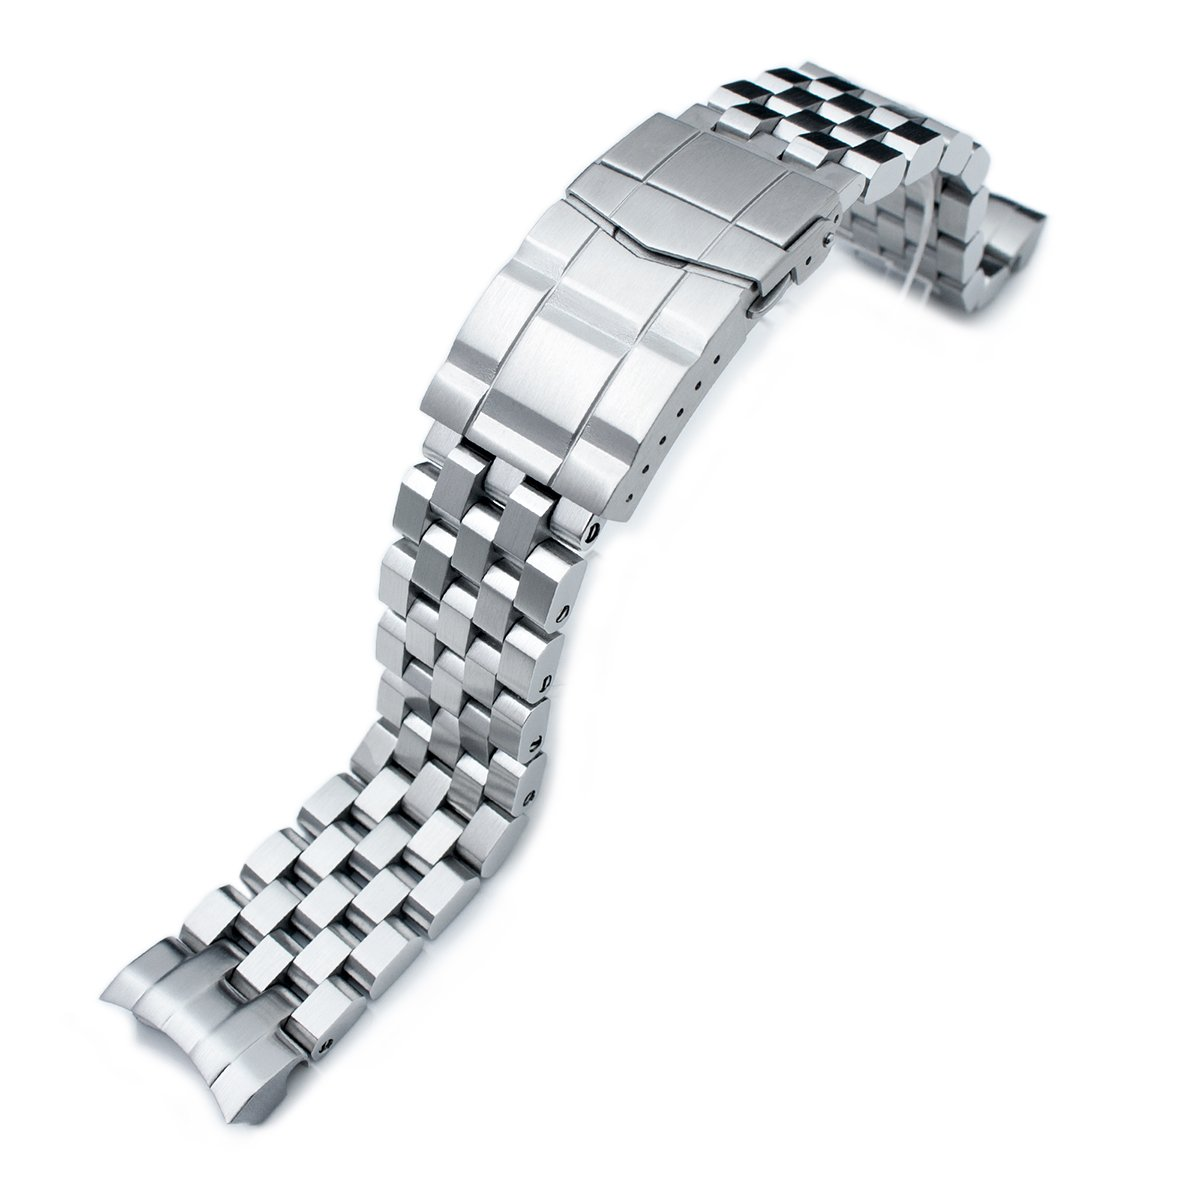 Super Engineer II Watch Band for SEIKO Sumo SBDC001 SBDC003 SBDC031 SBDC033, Sub-Clasp by Seiko Replacement by MiLTAT